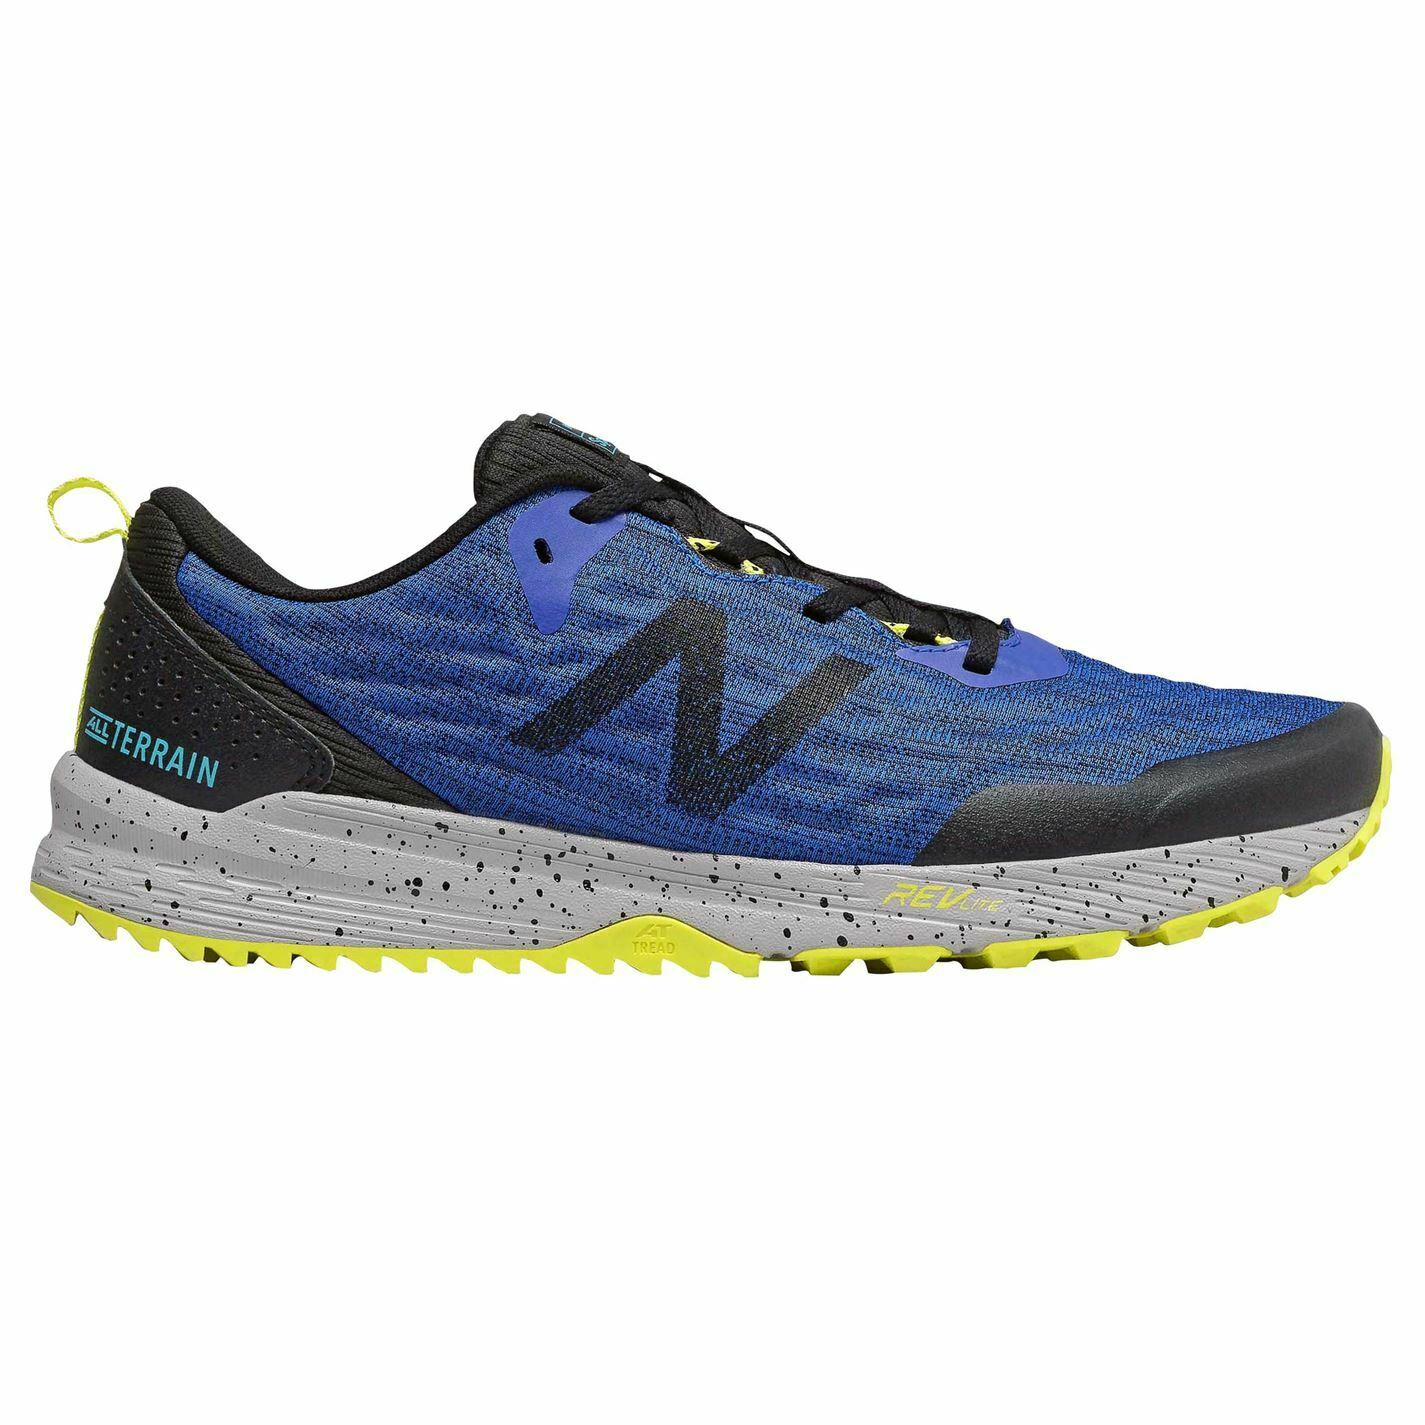 New Balance Nitrel Trail Laufen schuhe Herren Gents Laces Fastened Ventilated